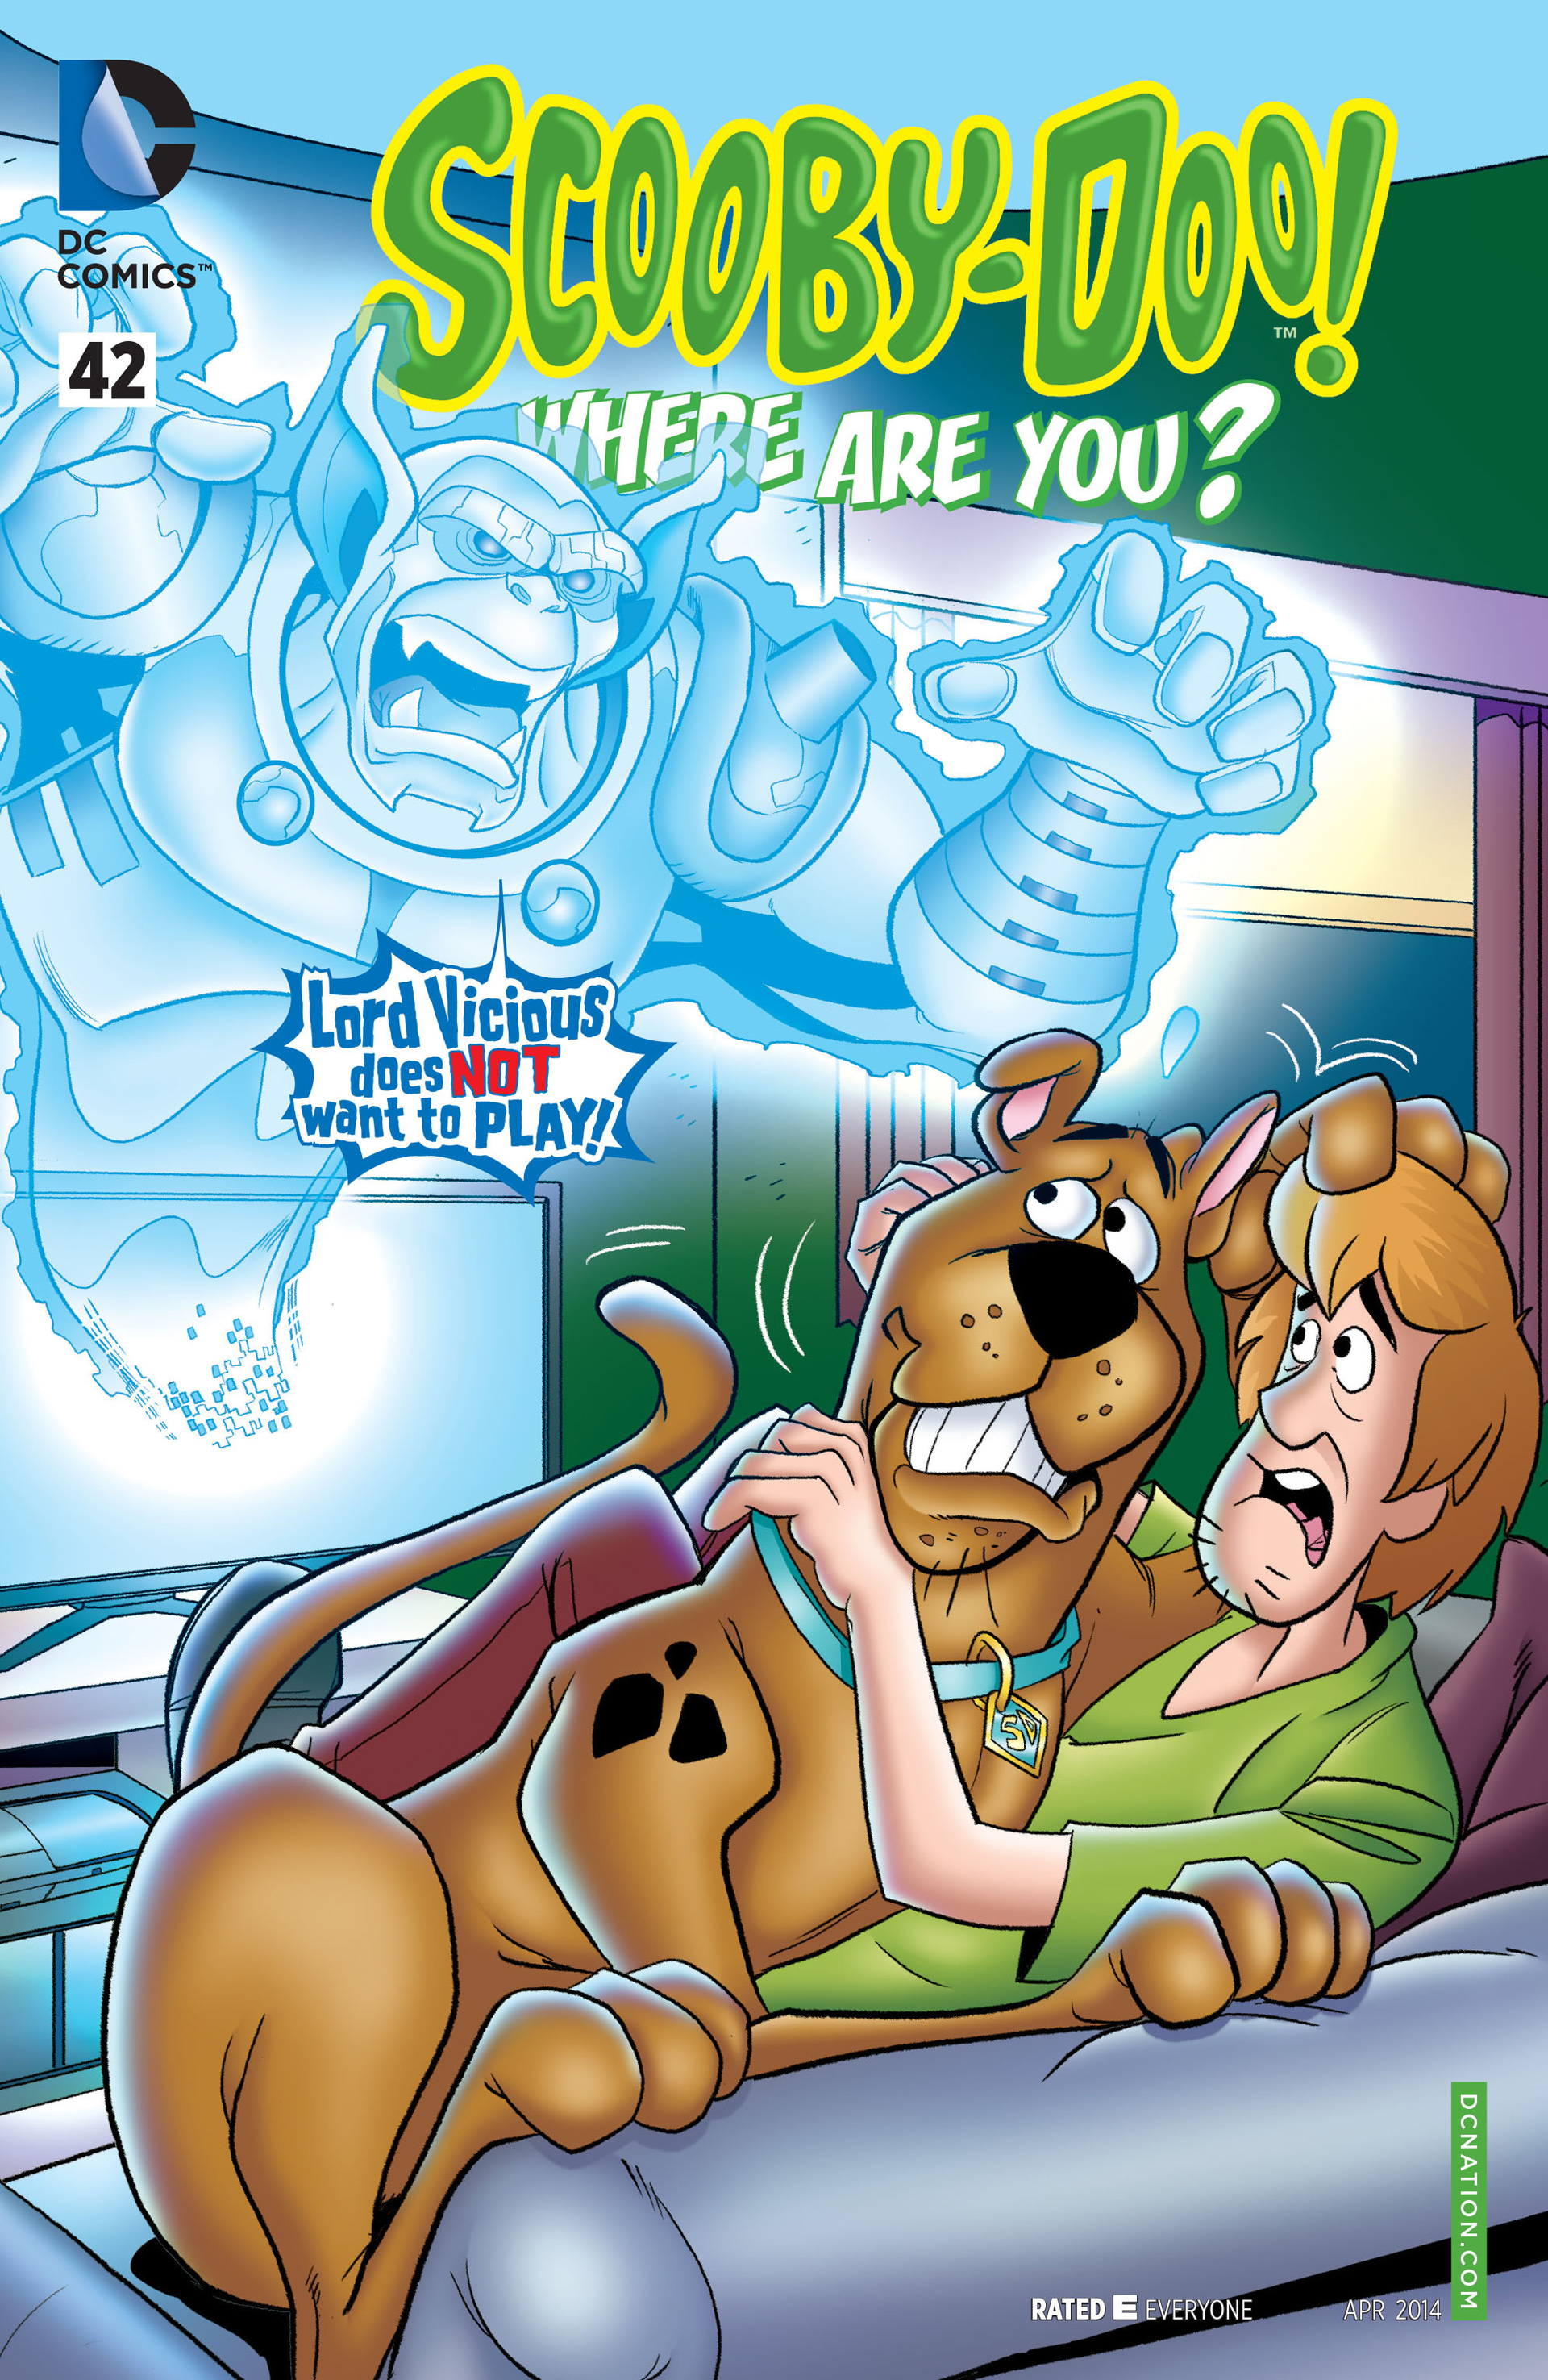 Read online Scooby-Doo: Where Are You? comic -  Issue #42 - 1